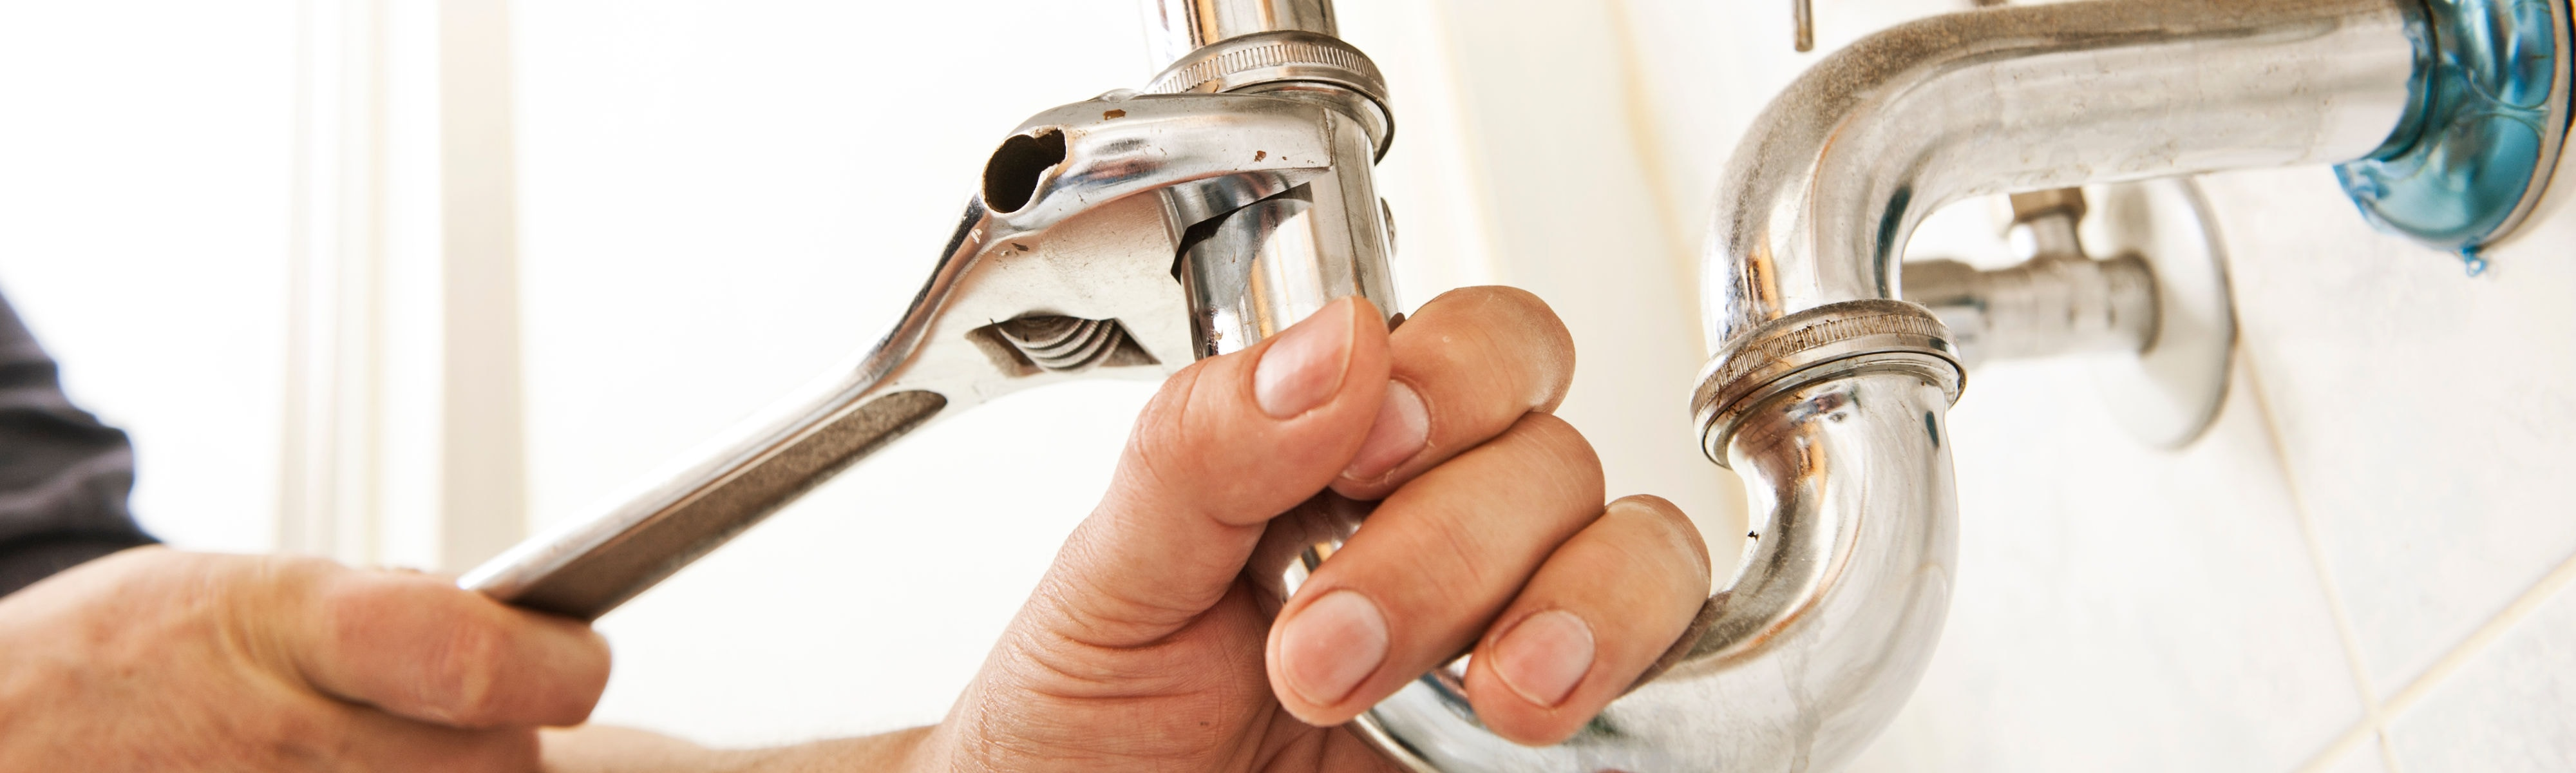 Plumber fixing a sink.